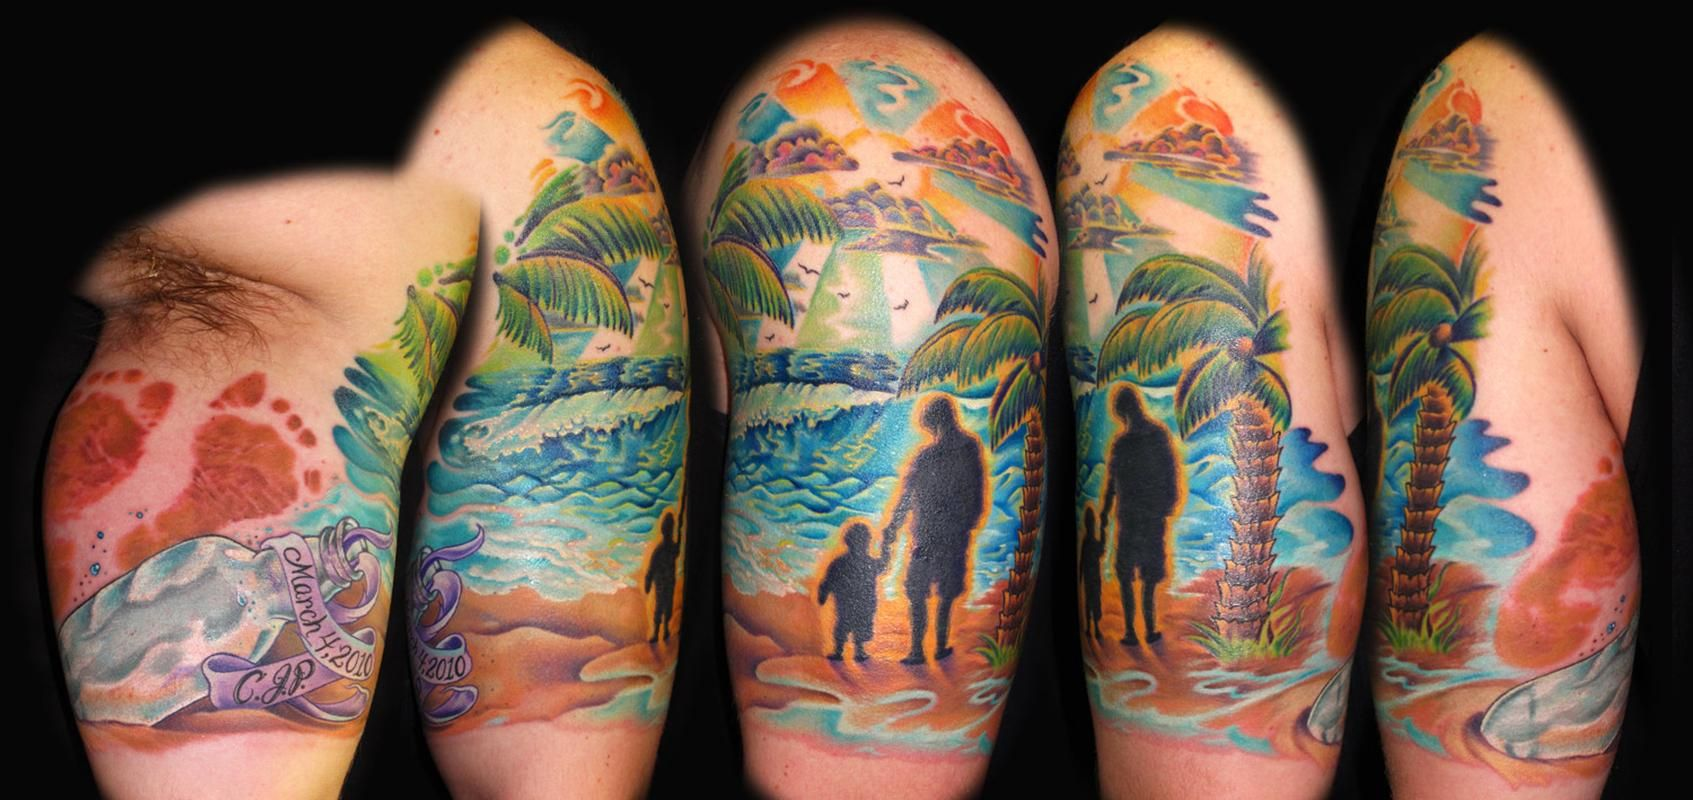 Love The Infant Footprint With The Beach Scene Quarter Sleeve Tattoo Tattoo Sleeve Designs Beachy Tattoos Sleeve Tattoos